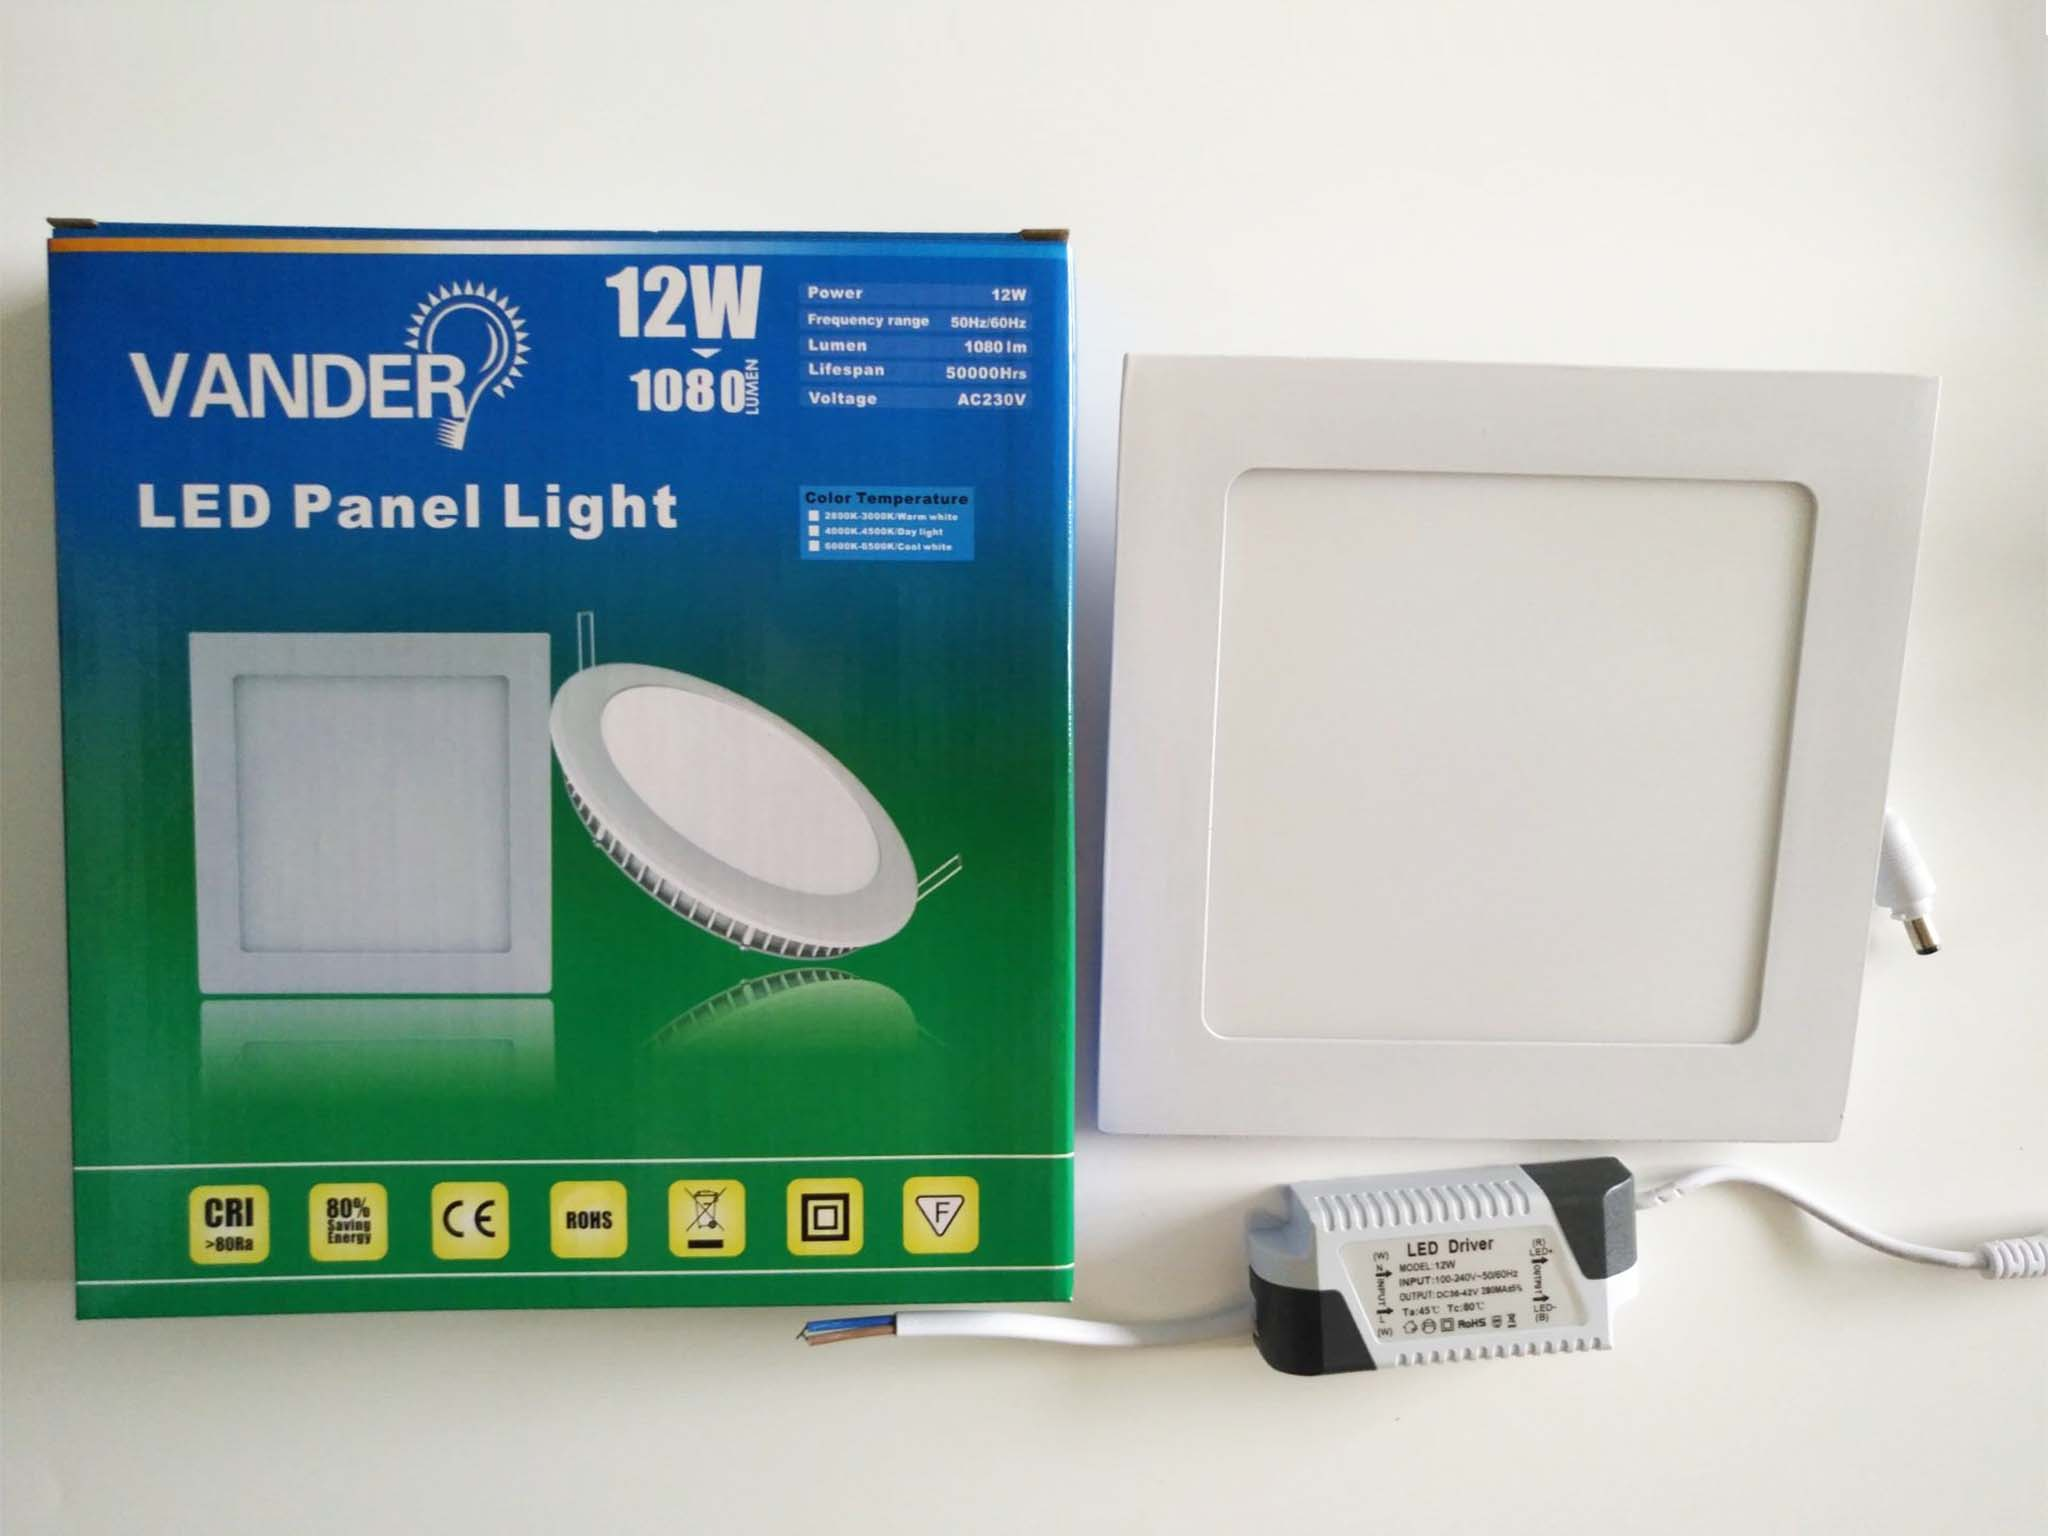 Colorful box package LED panel light 12W